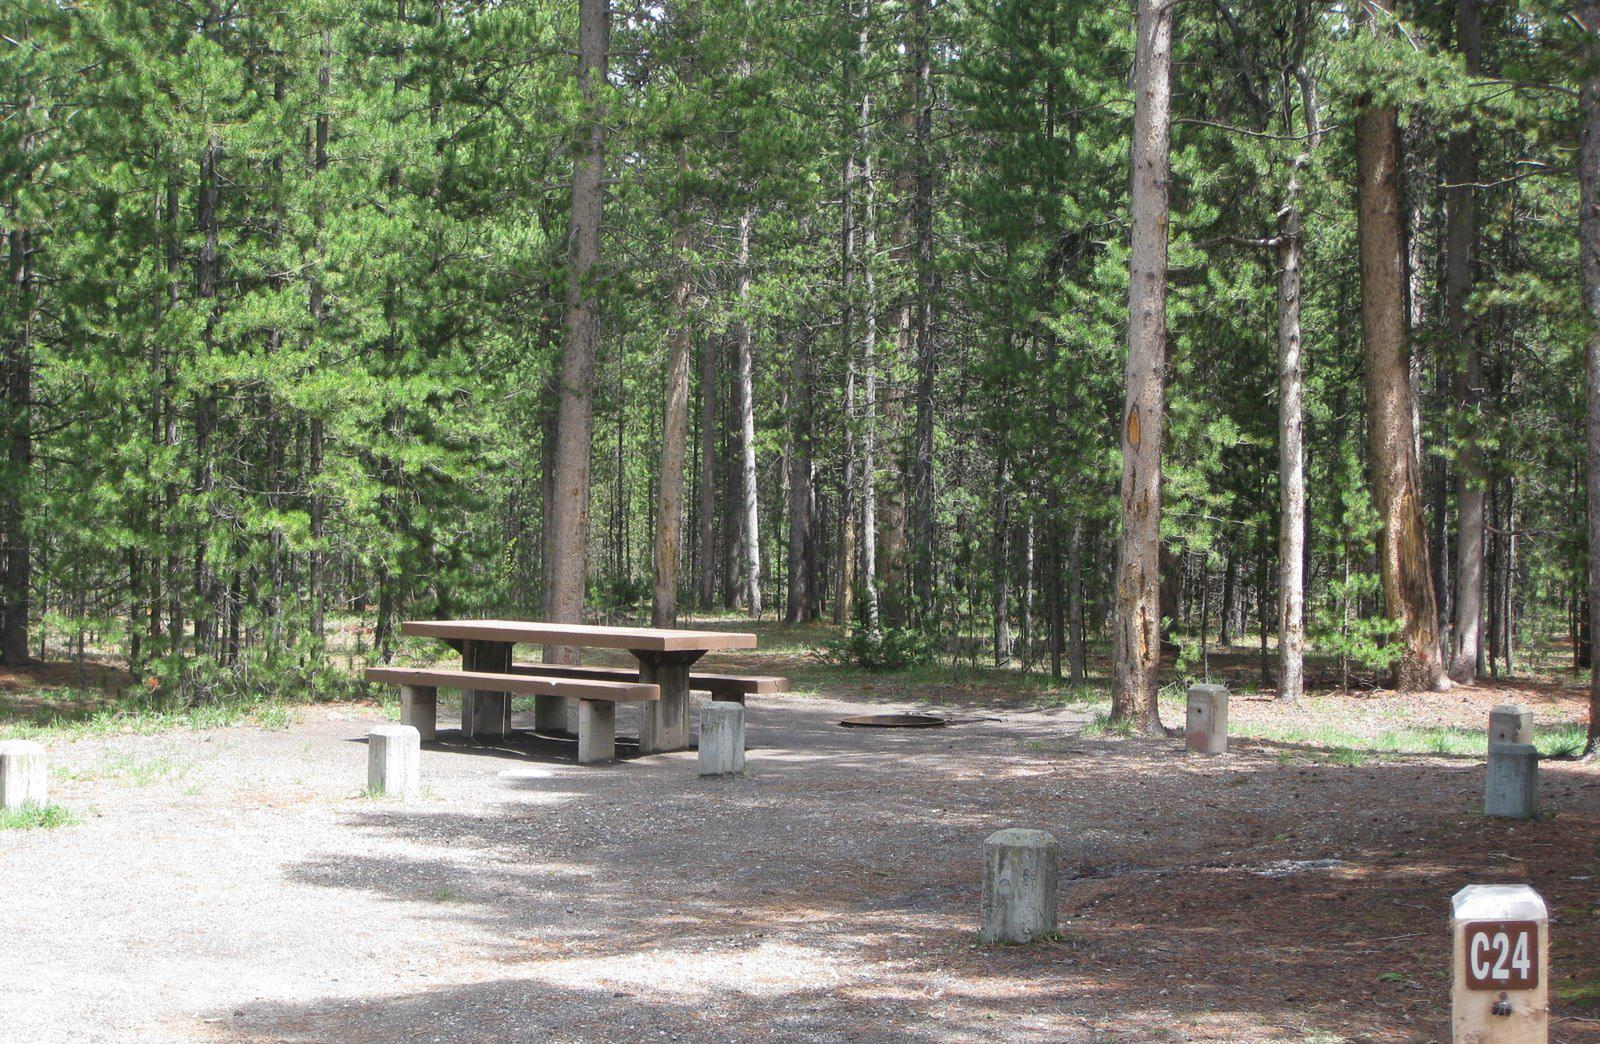 Site C24, surrounded by pine trees, picnic table & fire ringSite C24